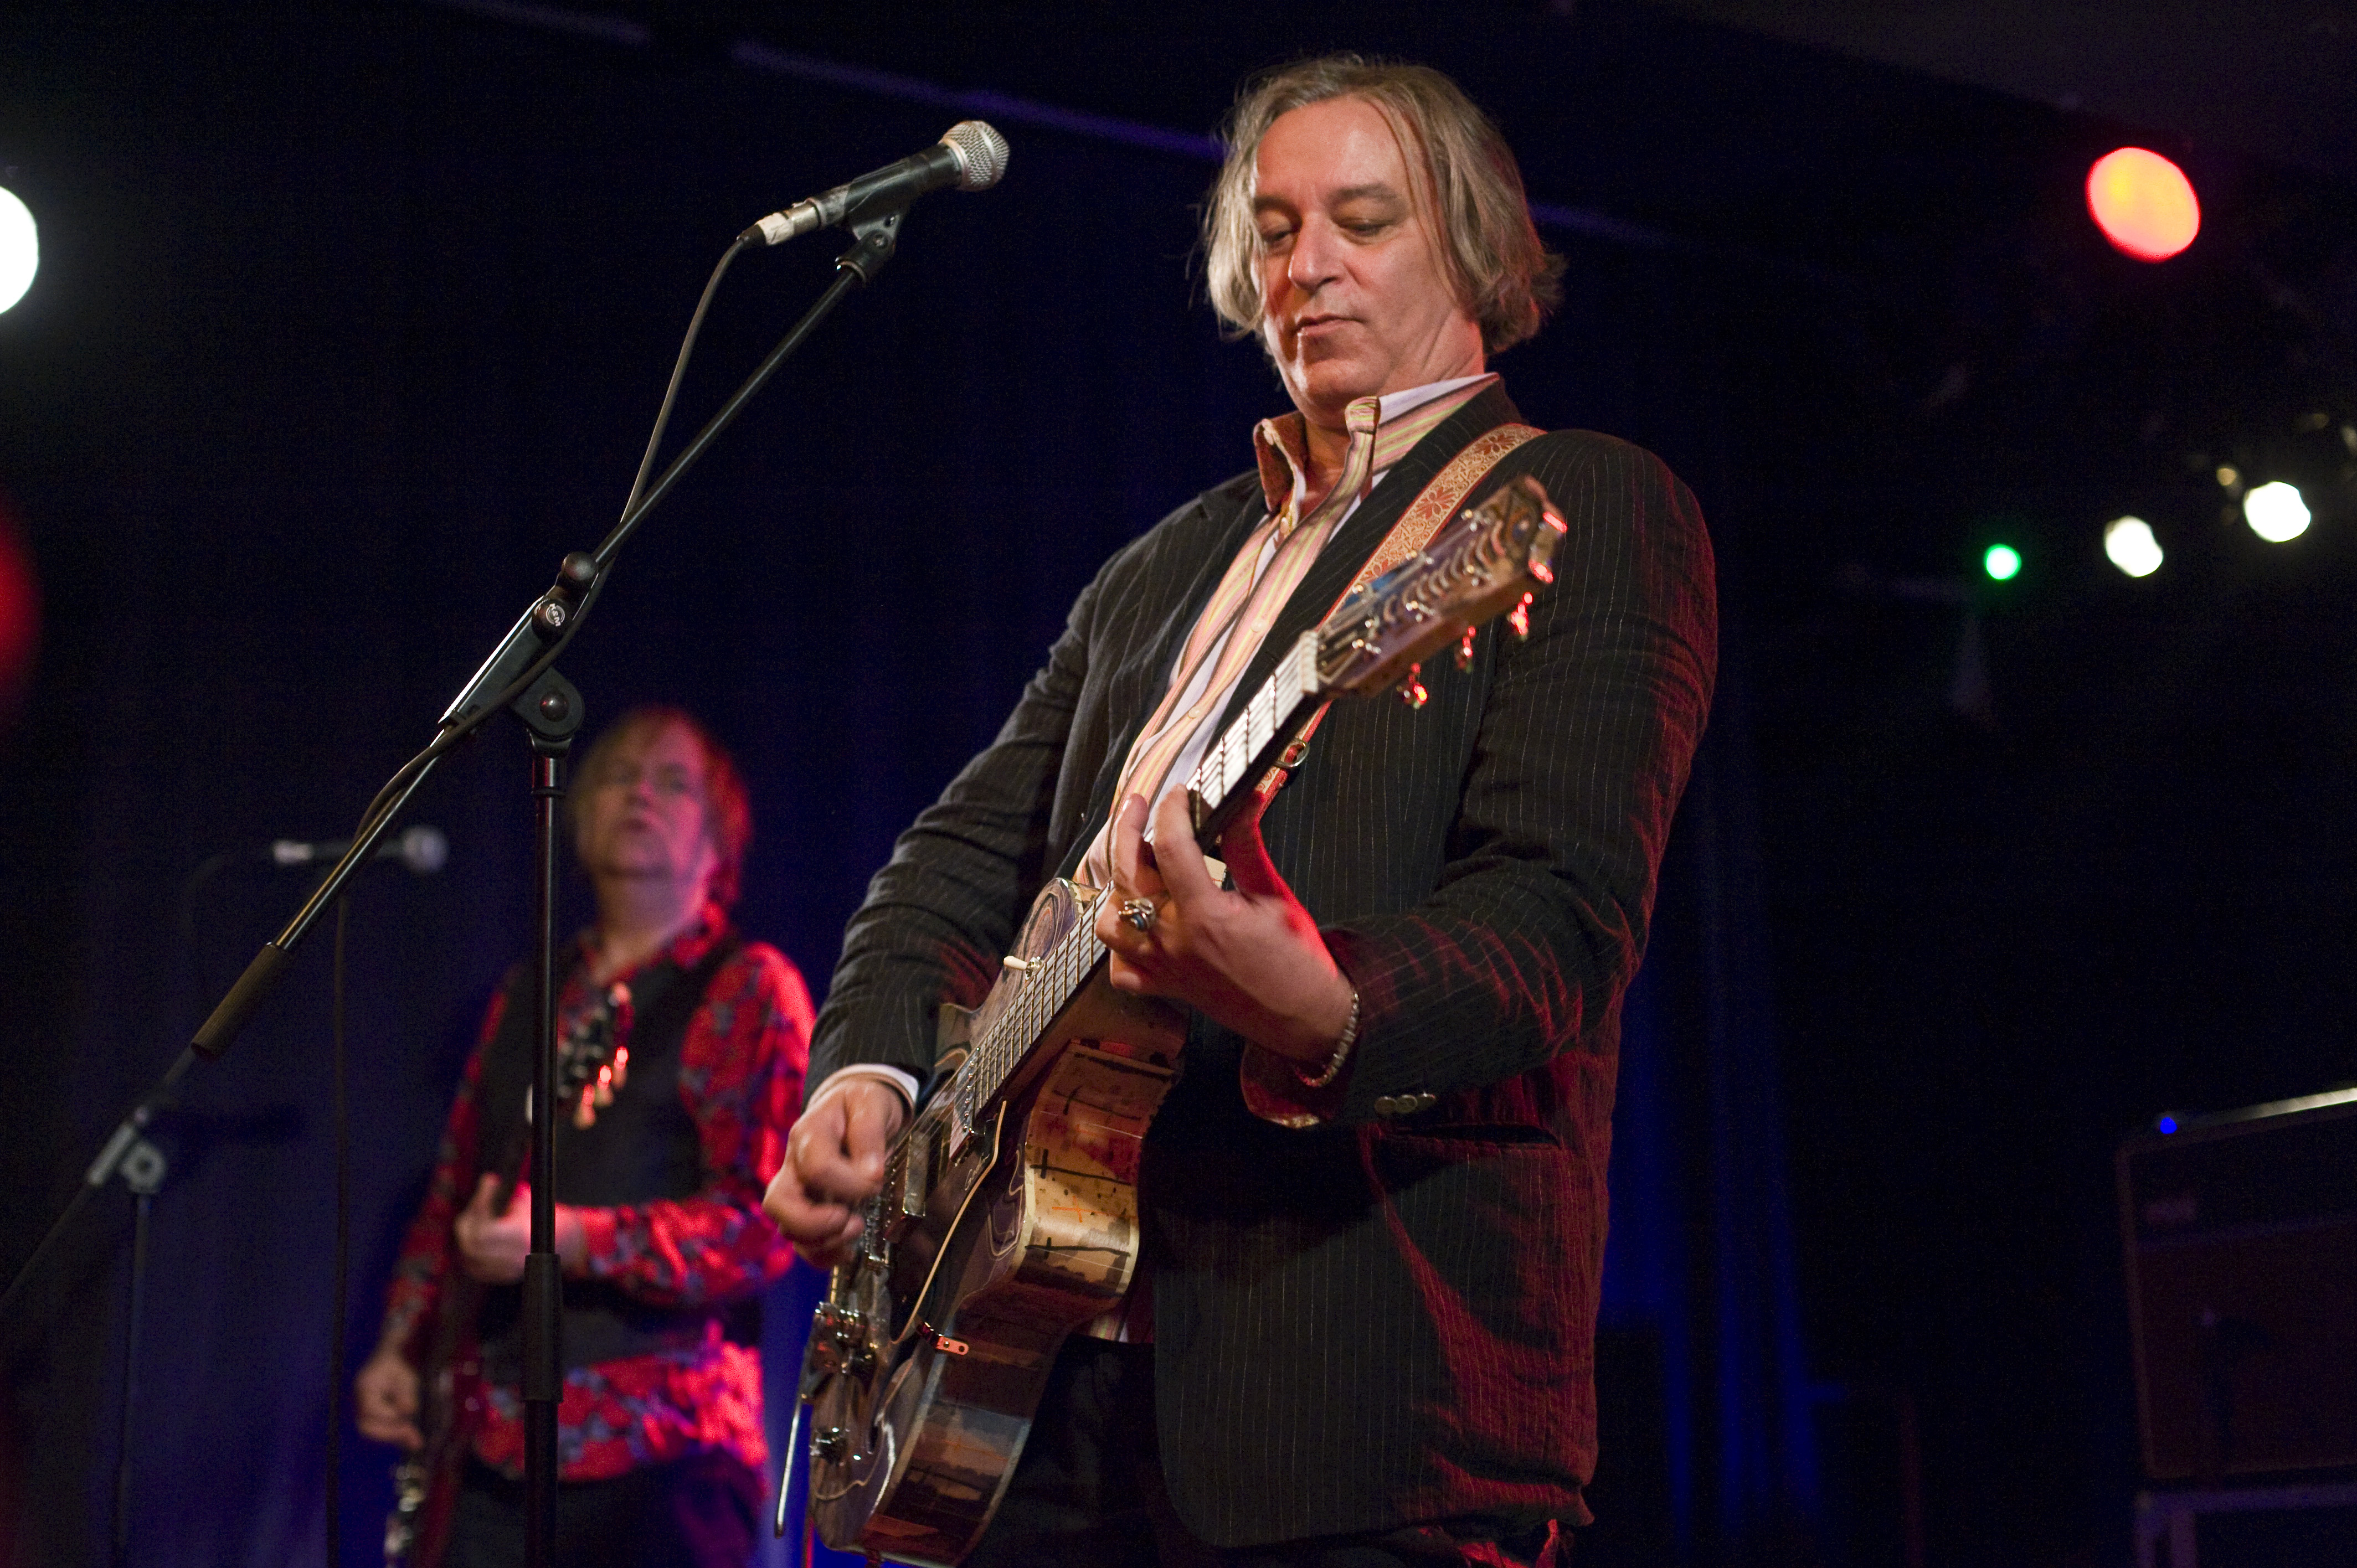 BARCELONA, SPAIN - JUNE 19: Kurt Bloch and Peter Buck of Peter Buck Band perform on stage at Sala Apolo on June 19, 2013 in B